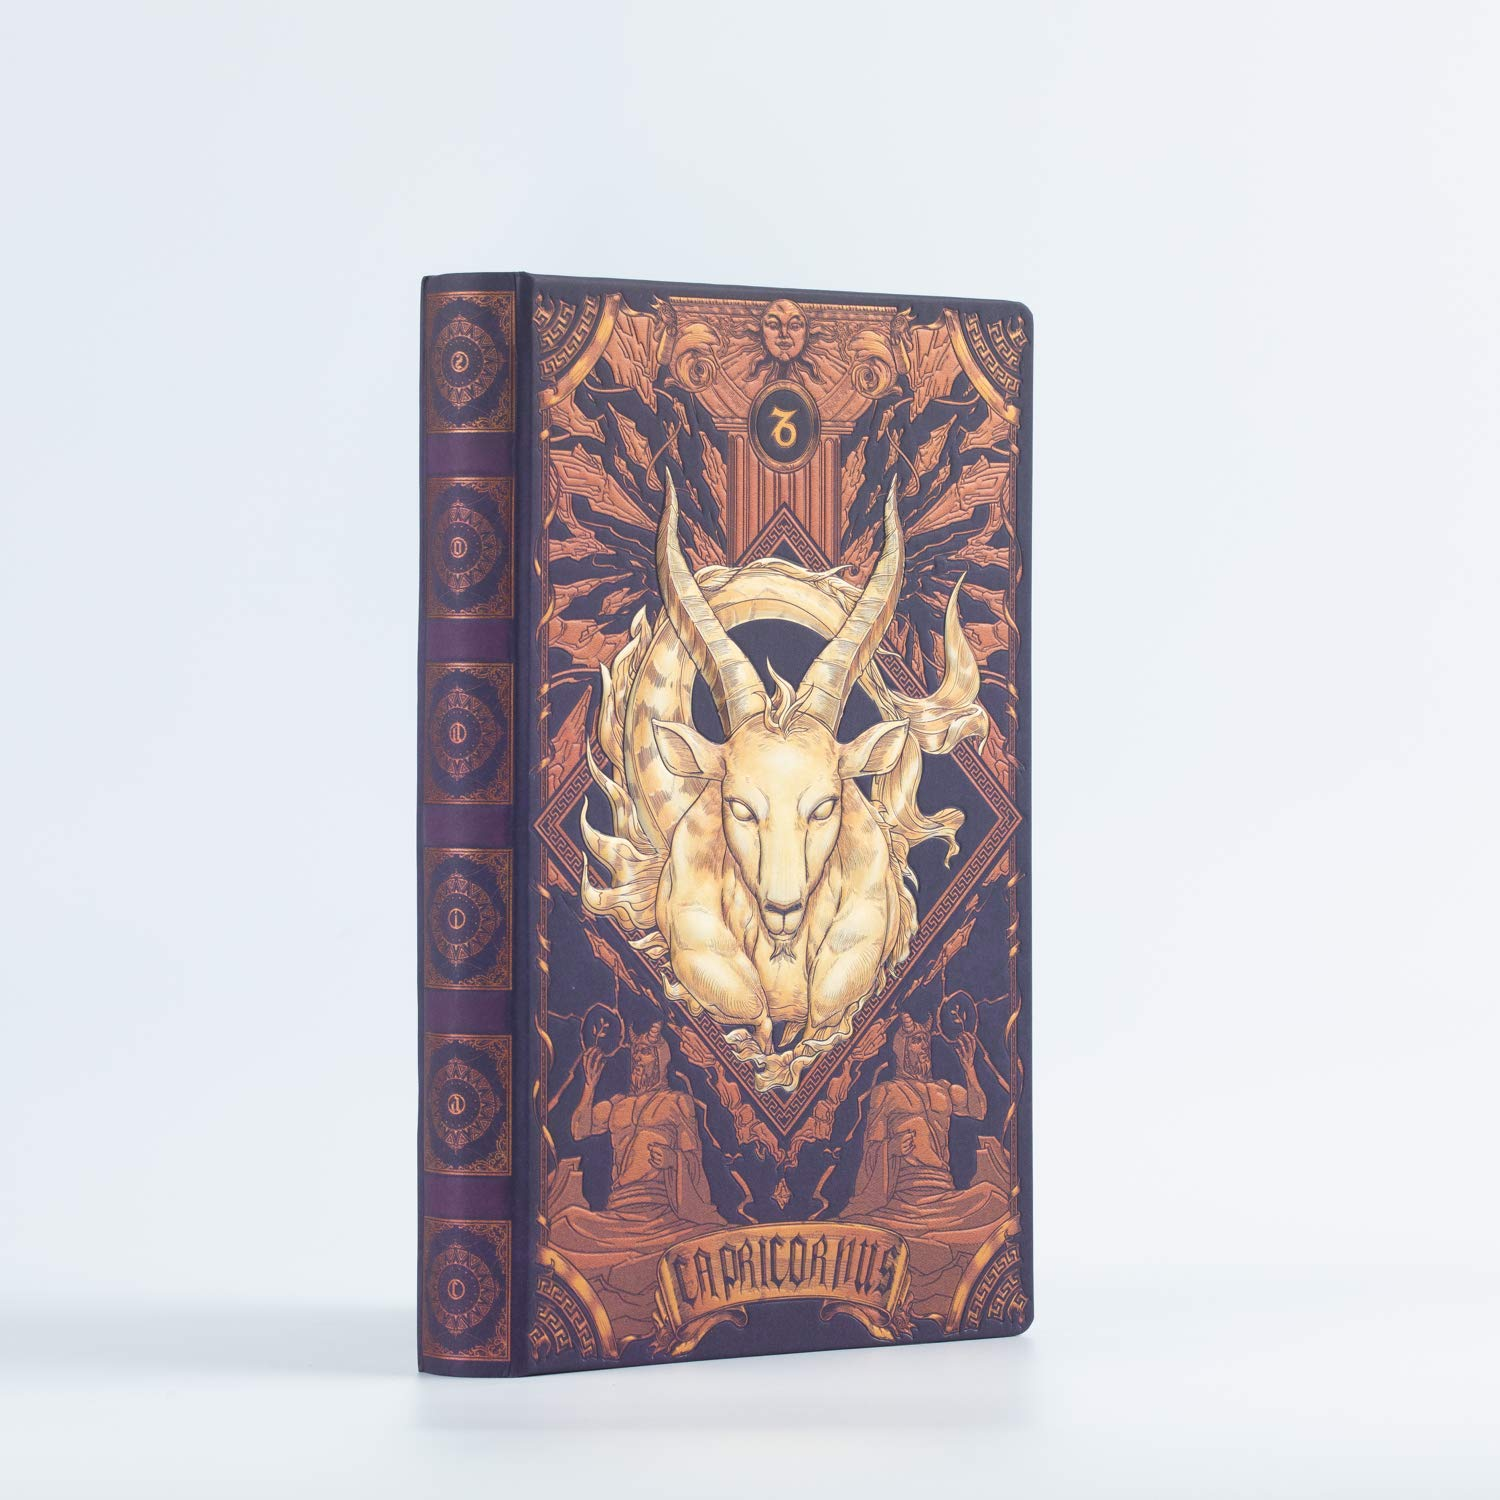 AstroReality Zodiac AR Notebook   Embossed Hardcover 12 Constellation Astrology Notebook   Horoscope Augmented Reality   8x5, 192 Pages Writing Pad Journal Book Travel Diary (Capricorn)